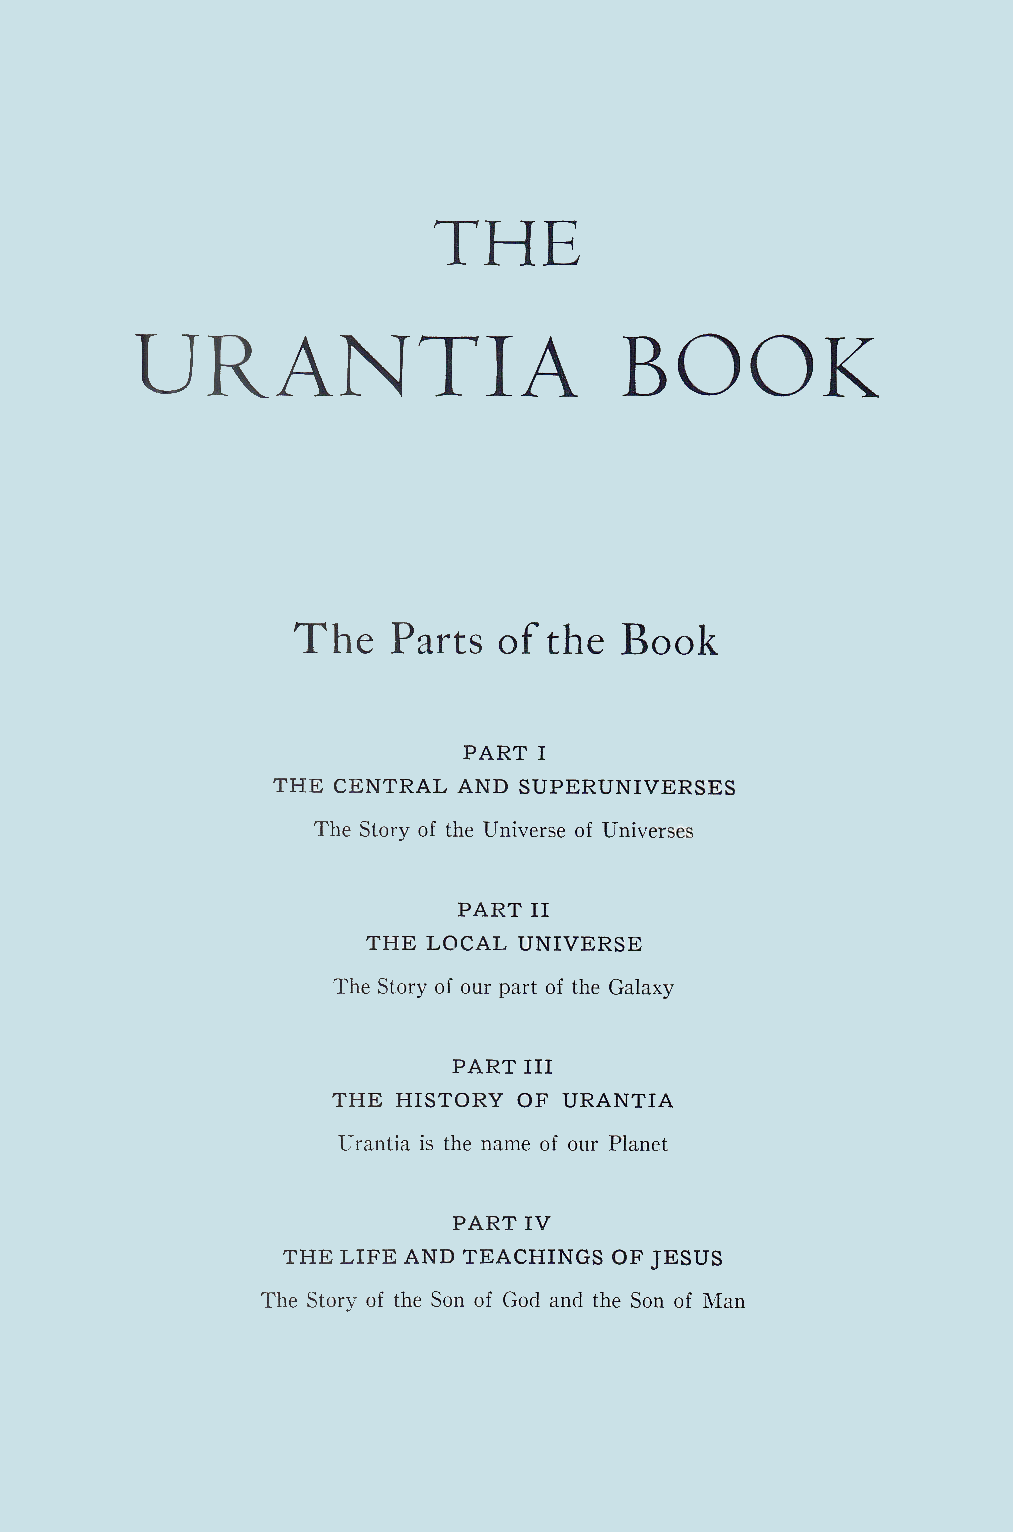 The Urantia Book - Wikipedia